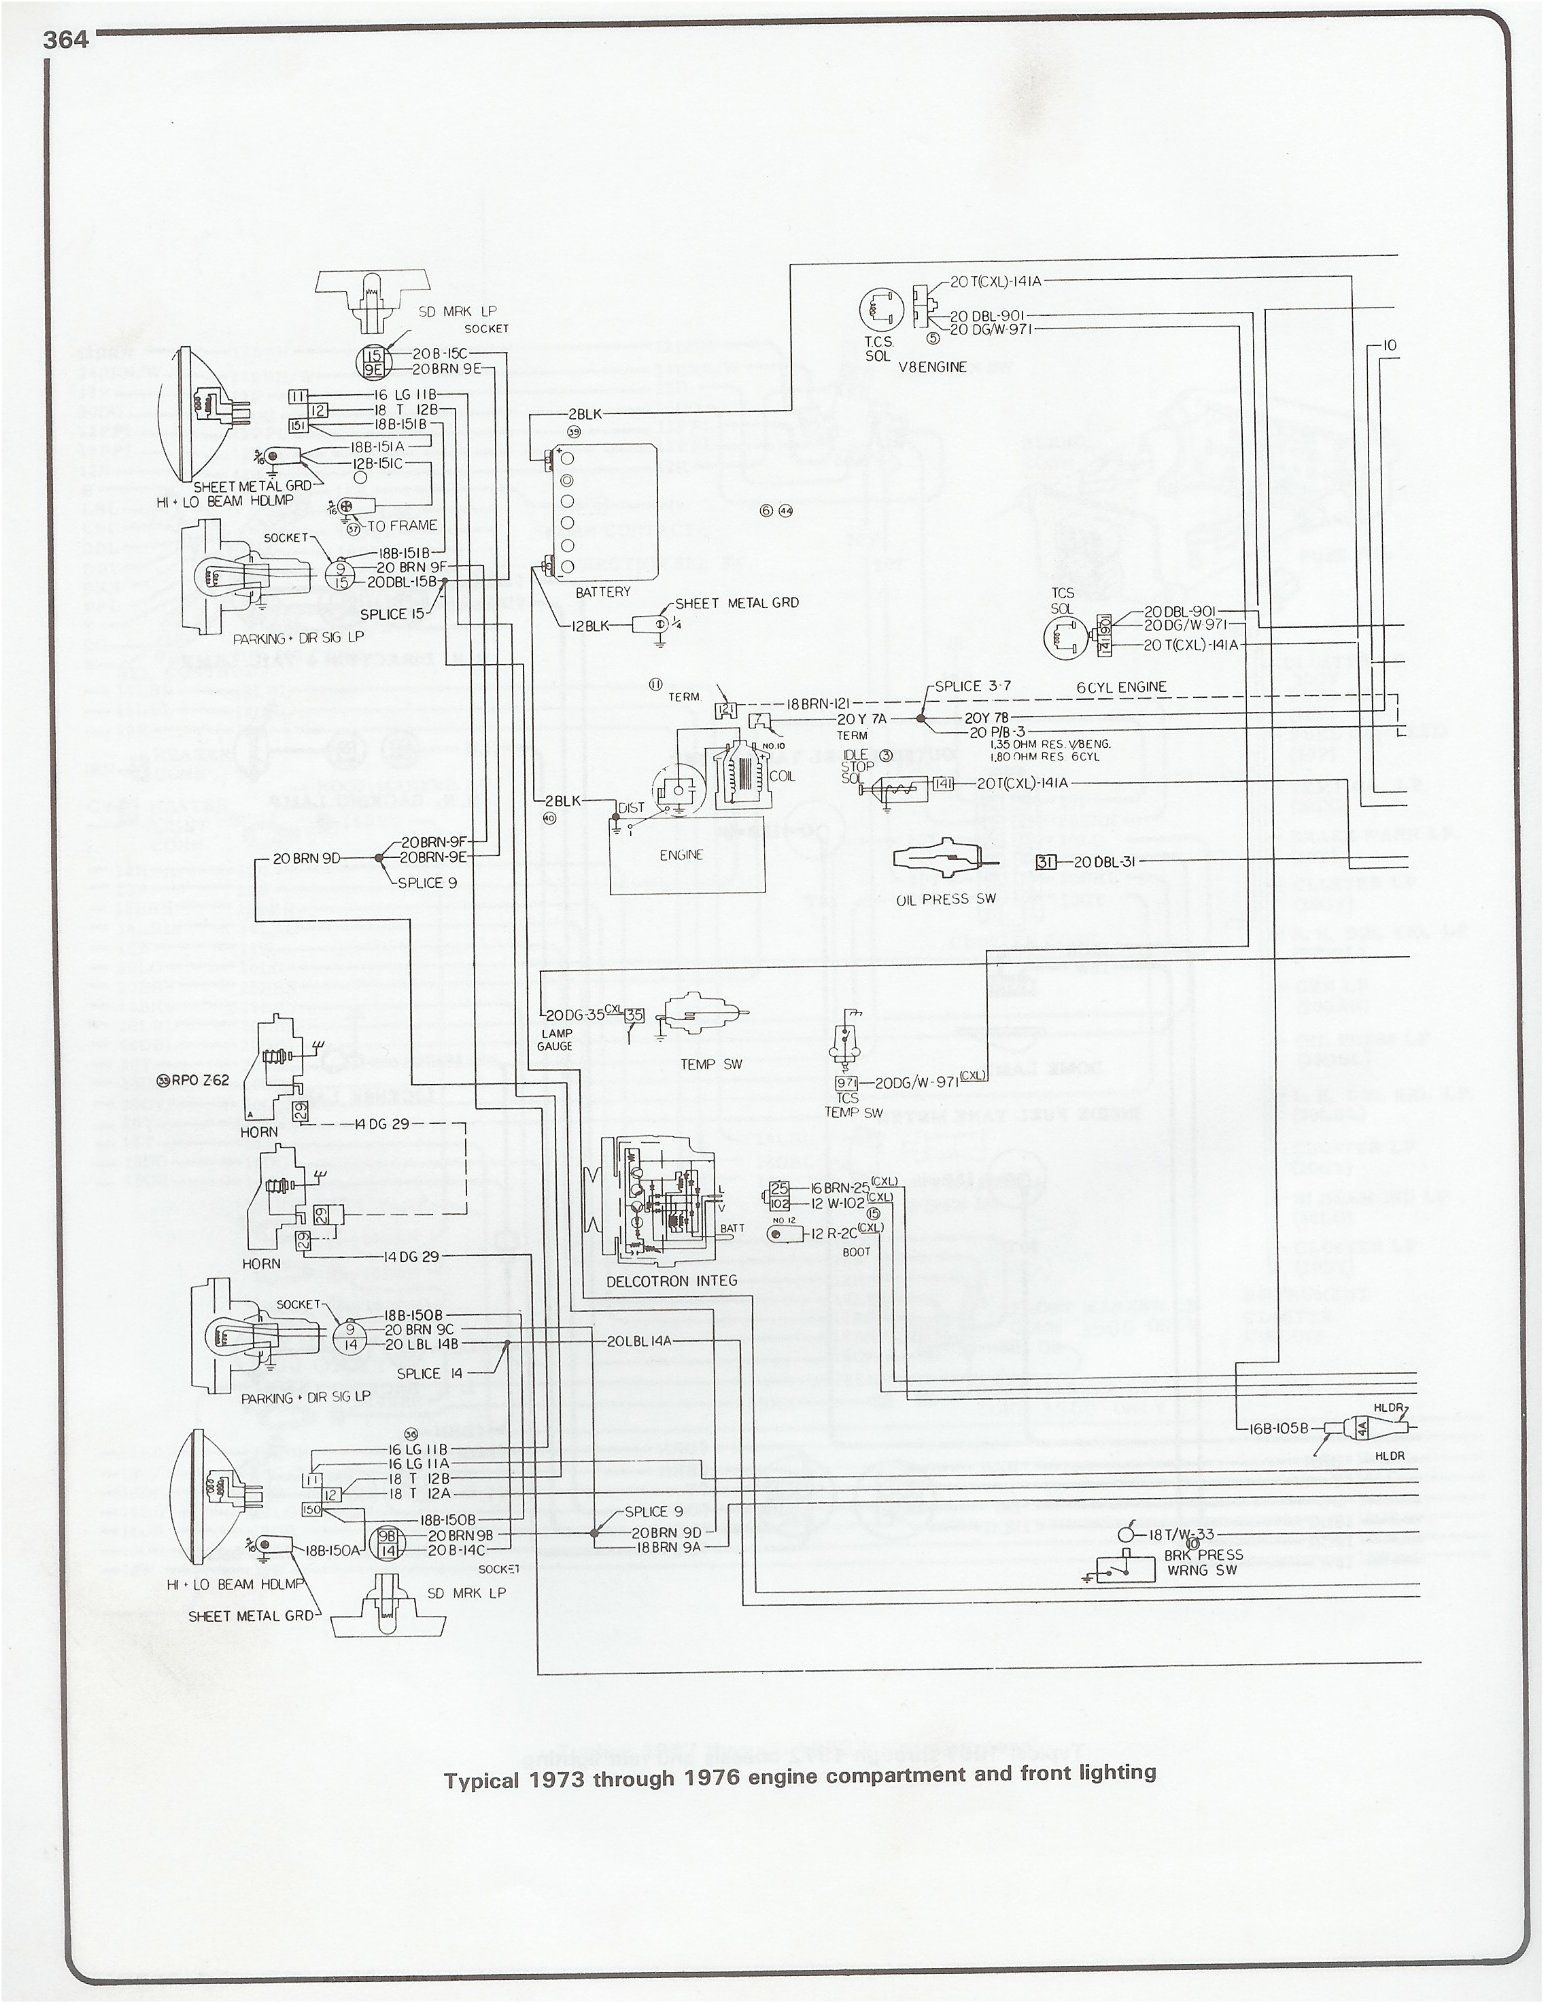 b46c0c014ab7ae7becc2b916945faf15 wiring diagram 1973 1976 chevy pickup chevy wiring diagram 1976 camaro wiring diagram at readyjetset.co